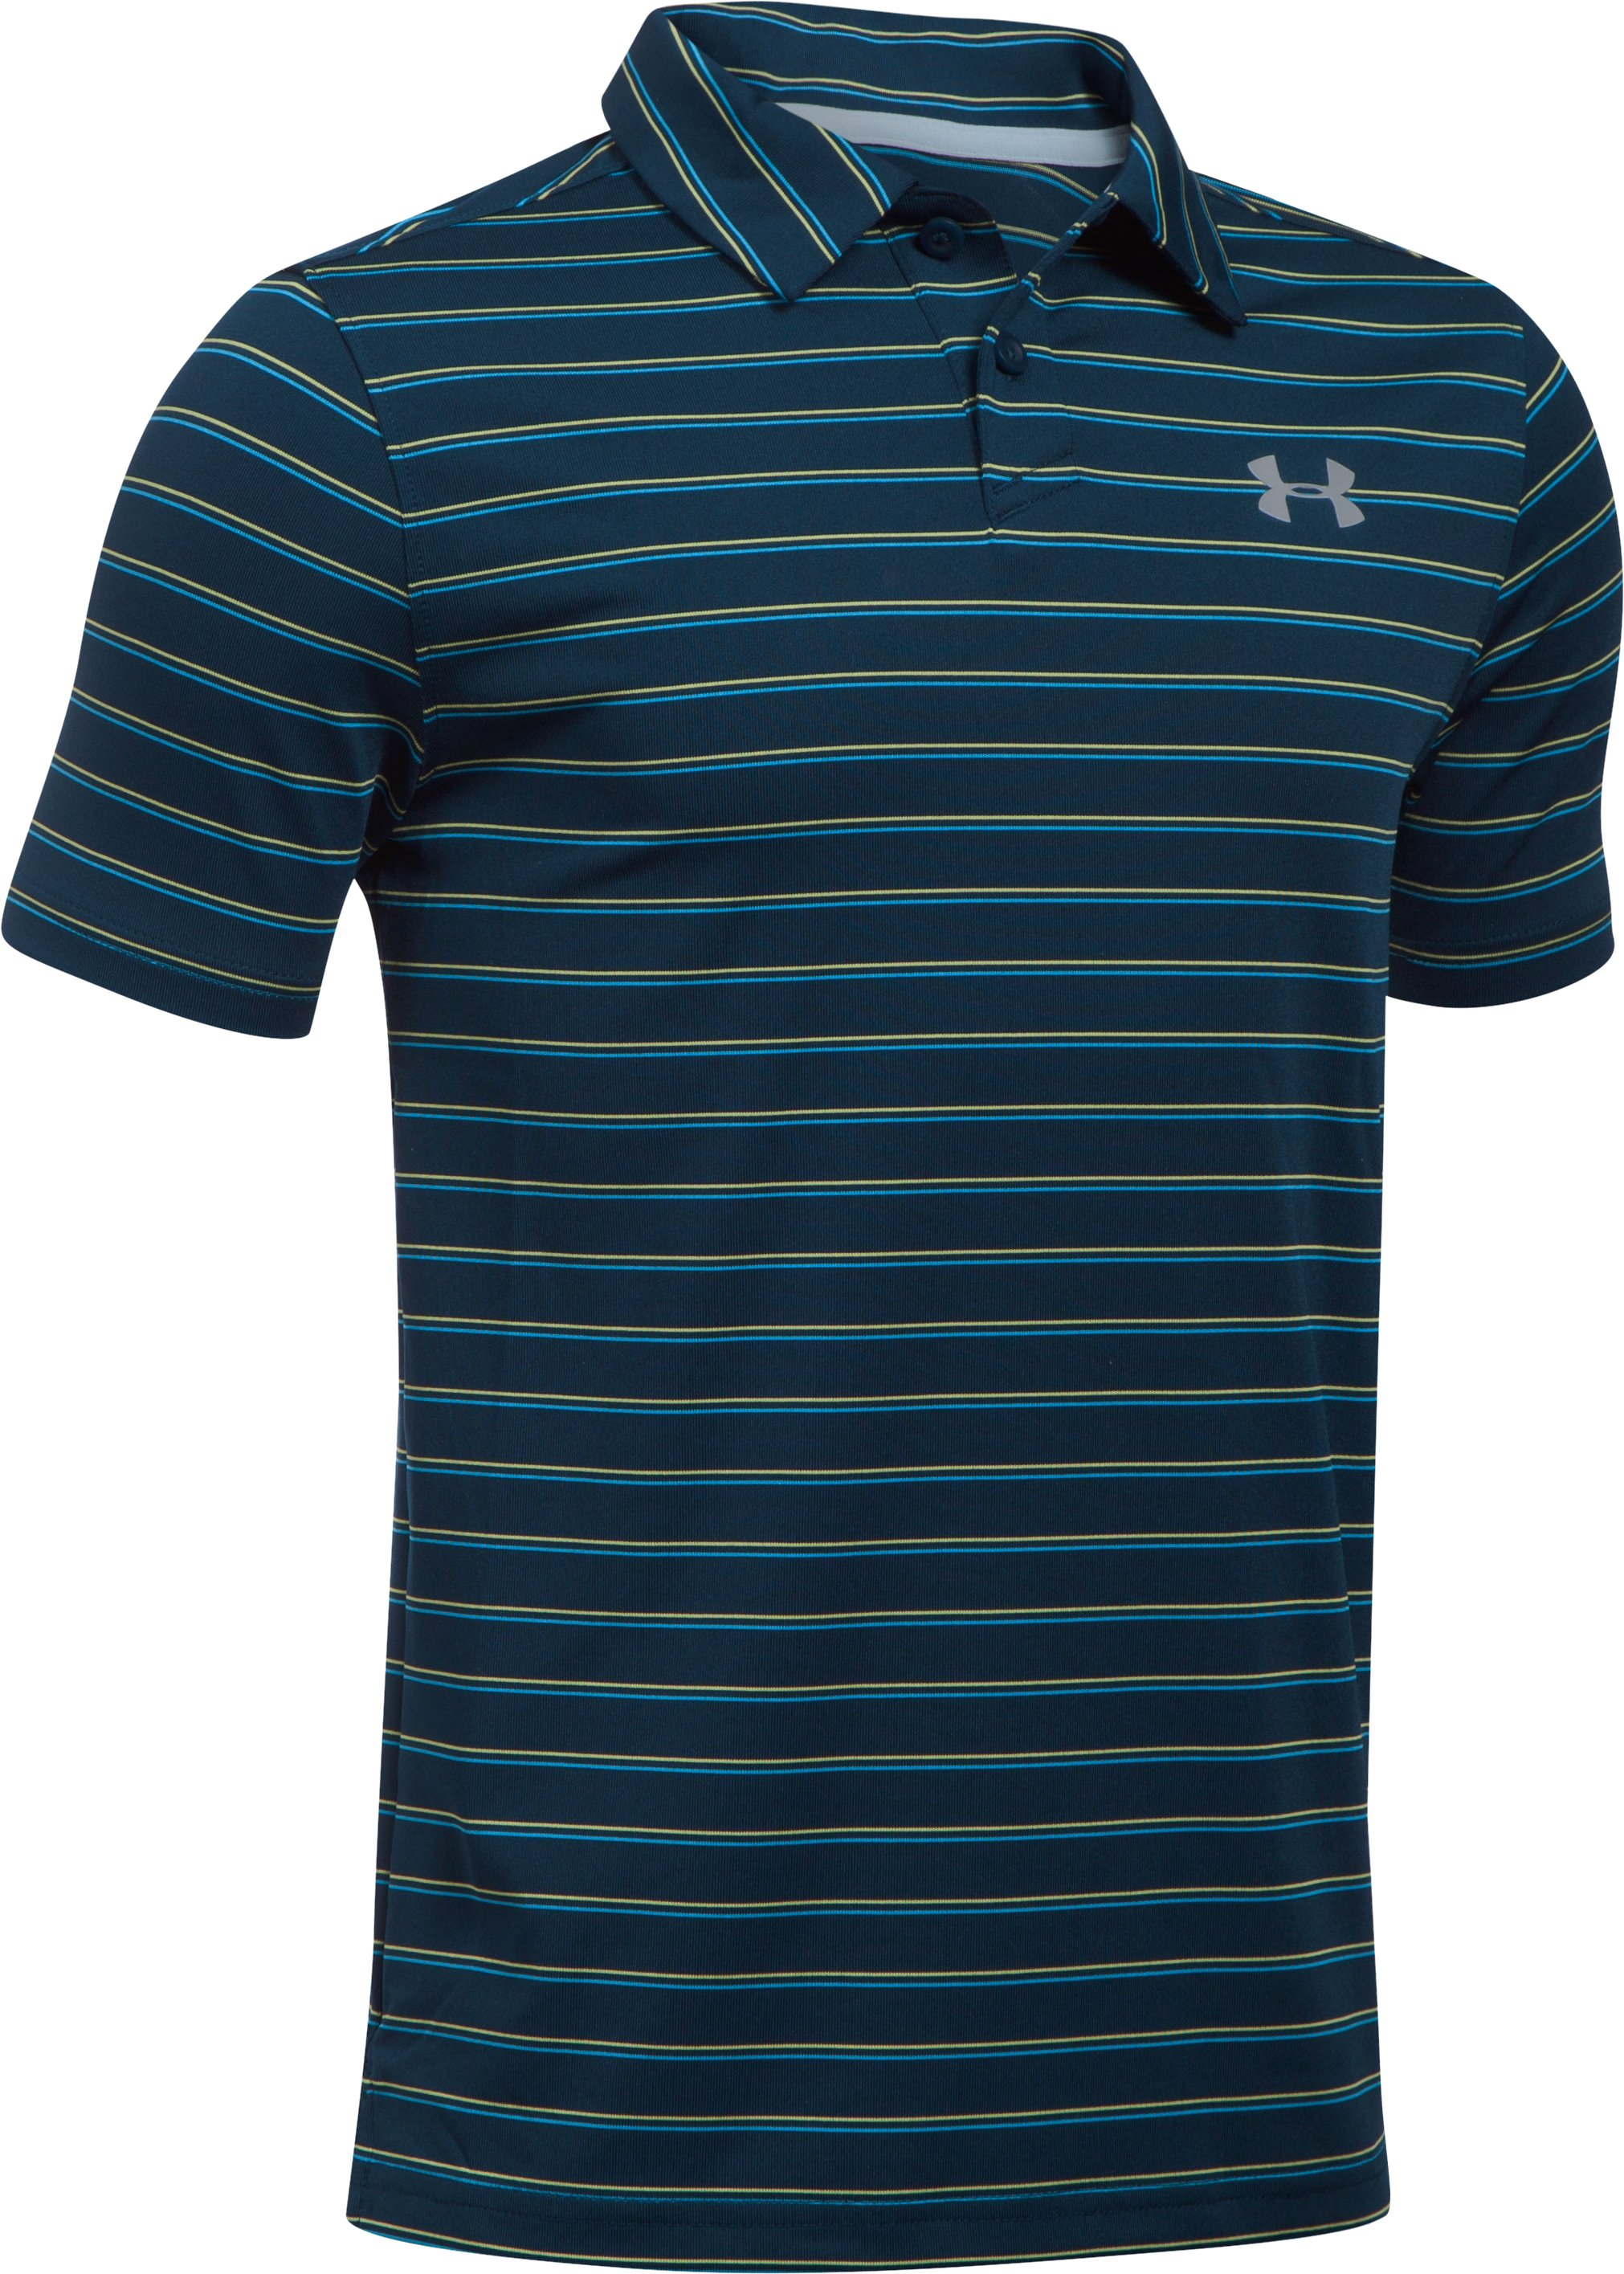 Boys' UA Putting Stripe Polo Shirt, Academy